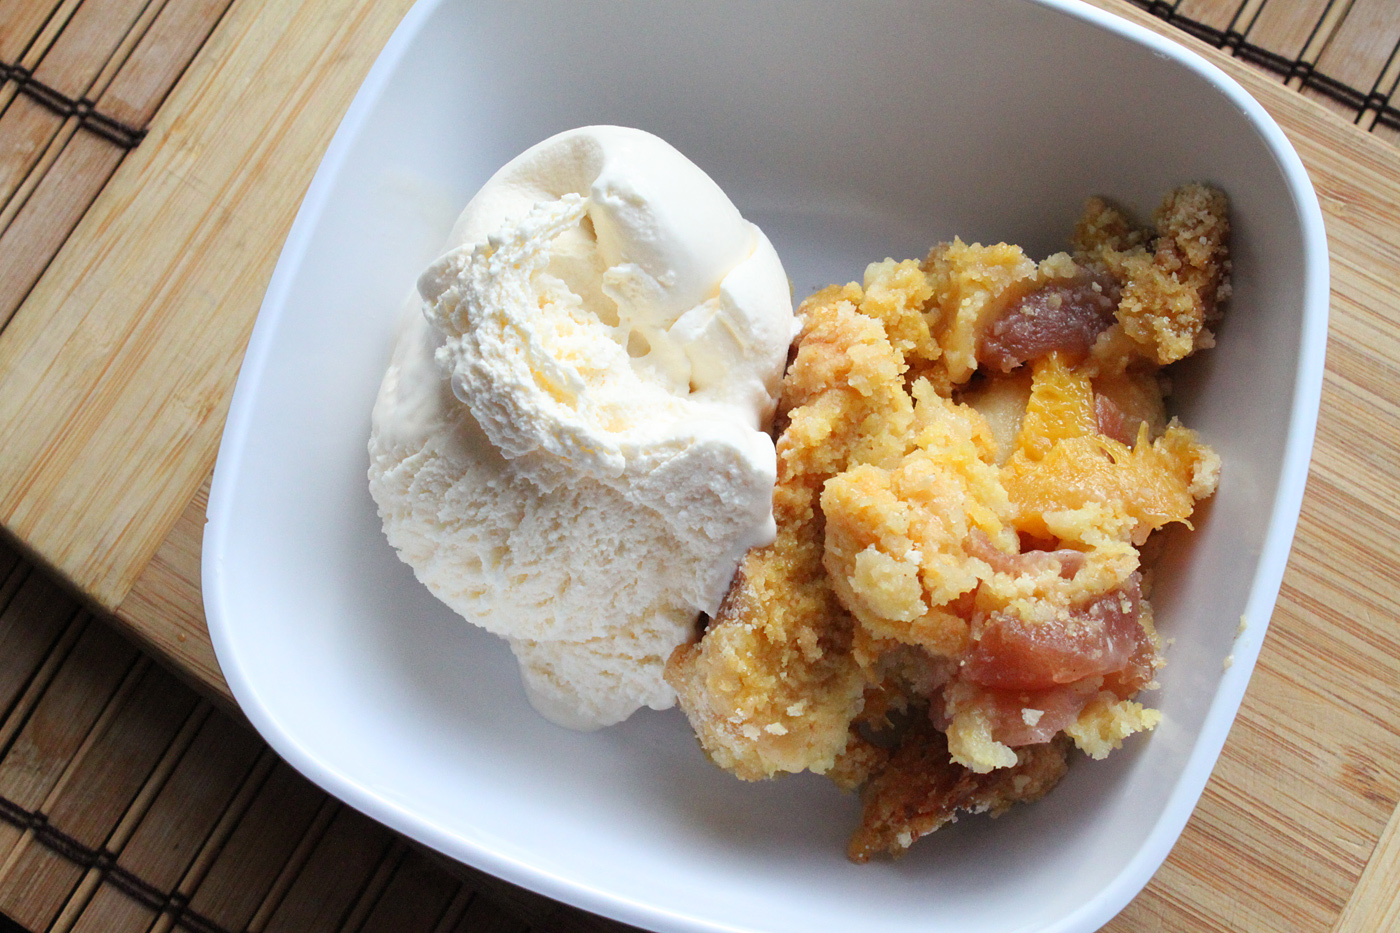 Apple and Peach Dump Cake Recipe